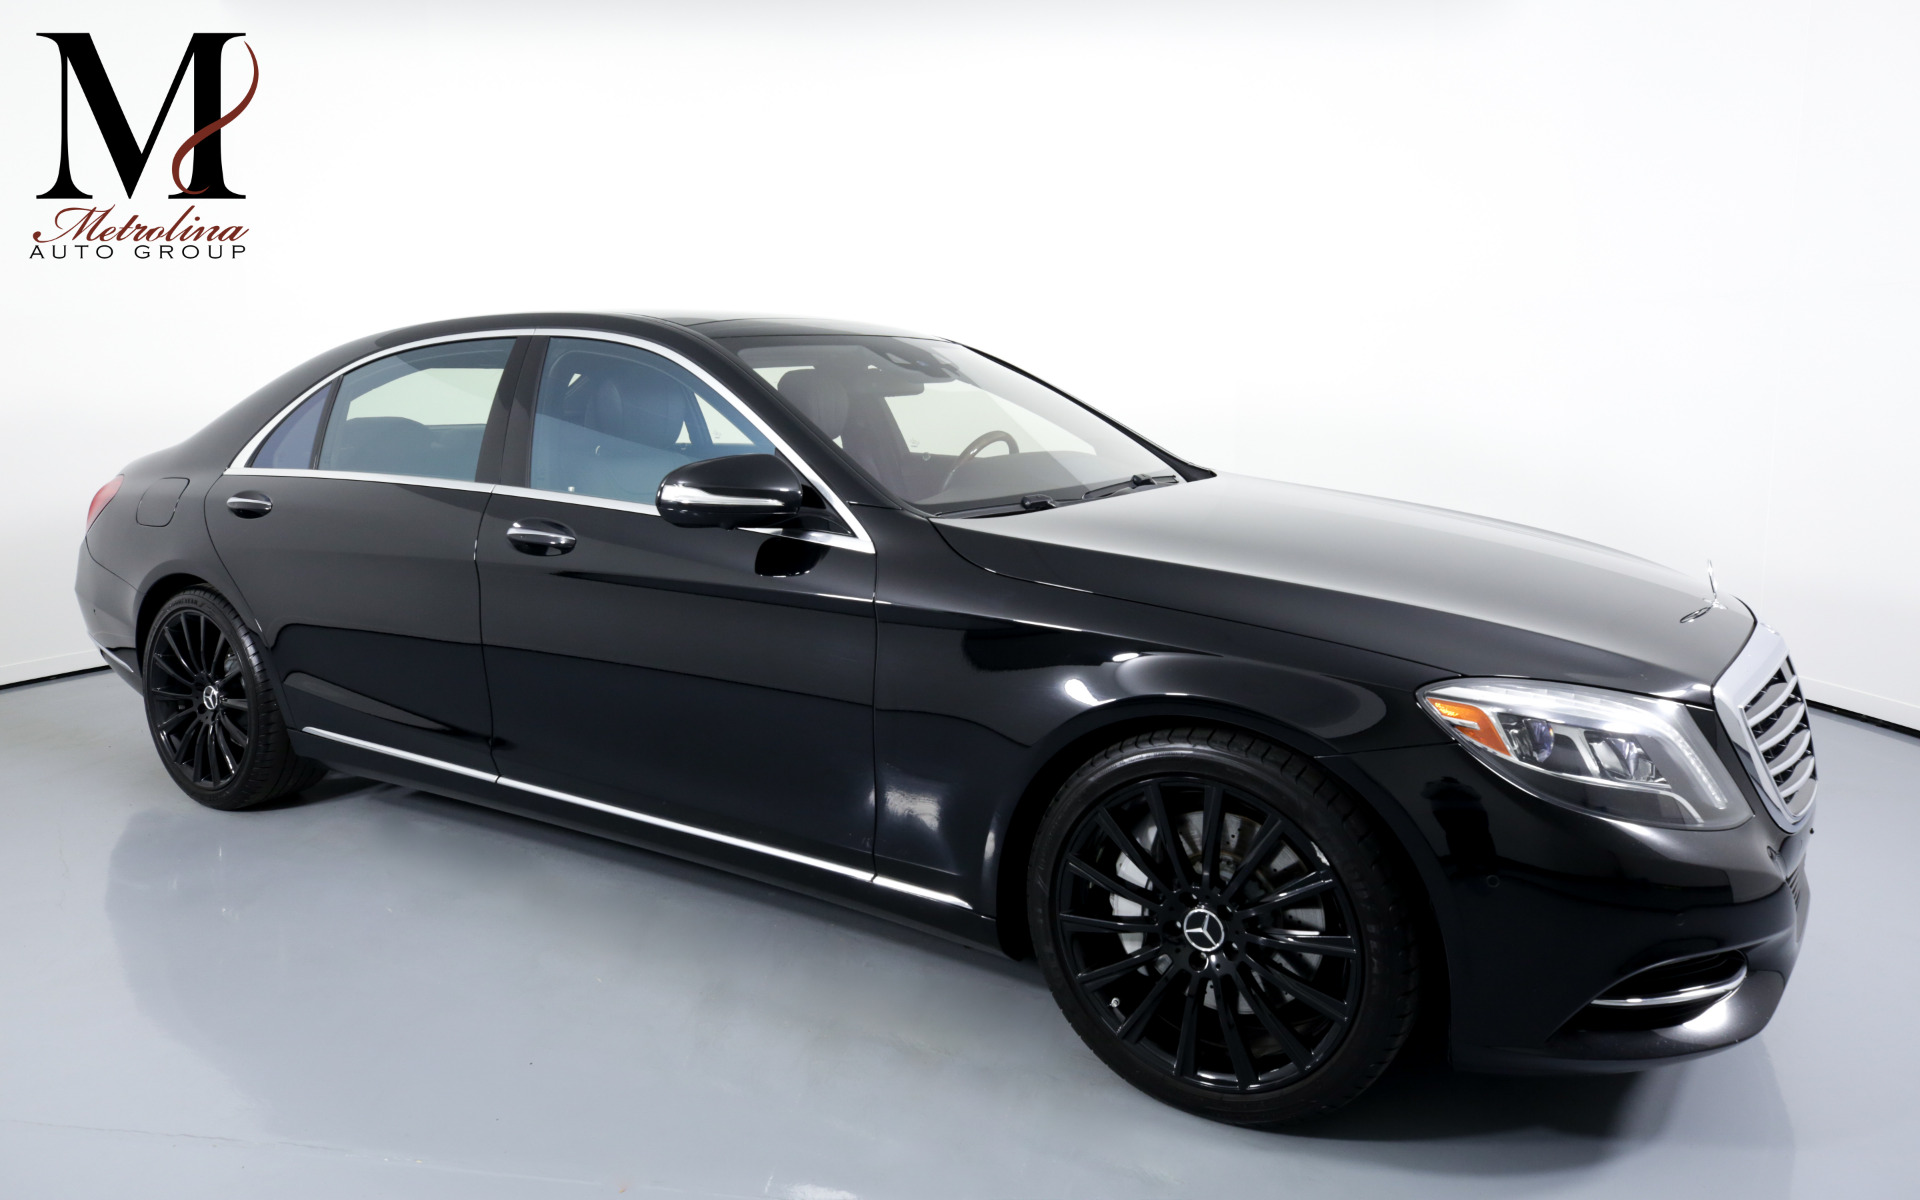 Used 2014 Mercedes-Benz S-Class S 550 for sale Sold at Metrolina Auto Group in Charlotte NC 28217 - 1